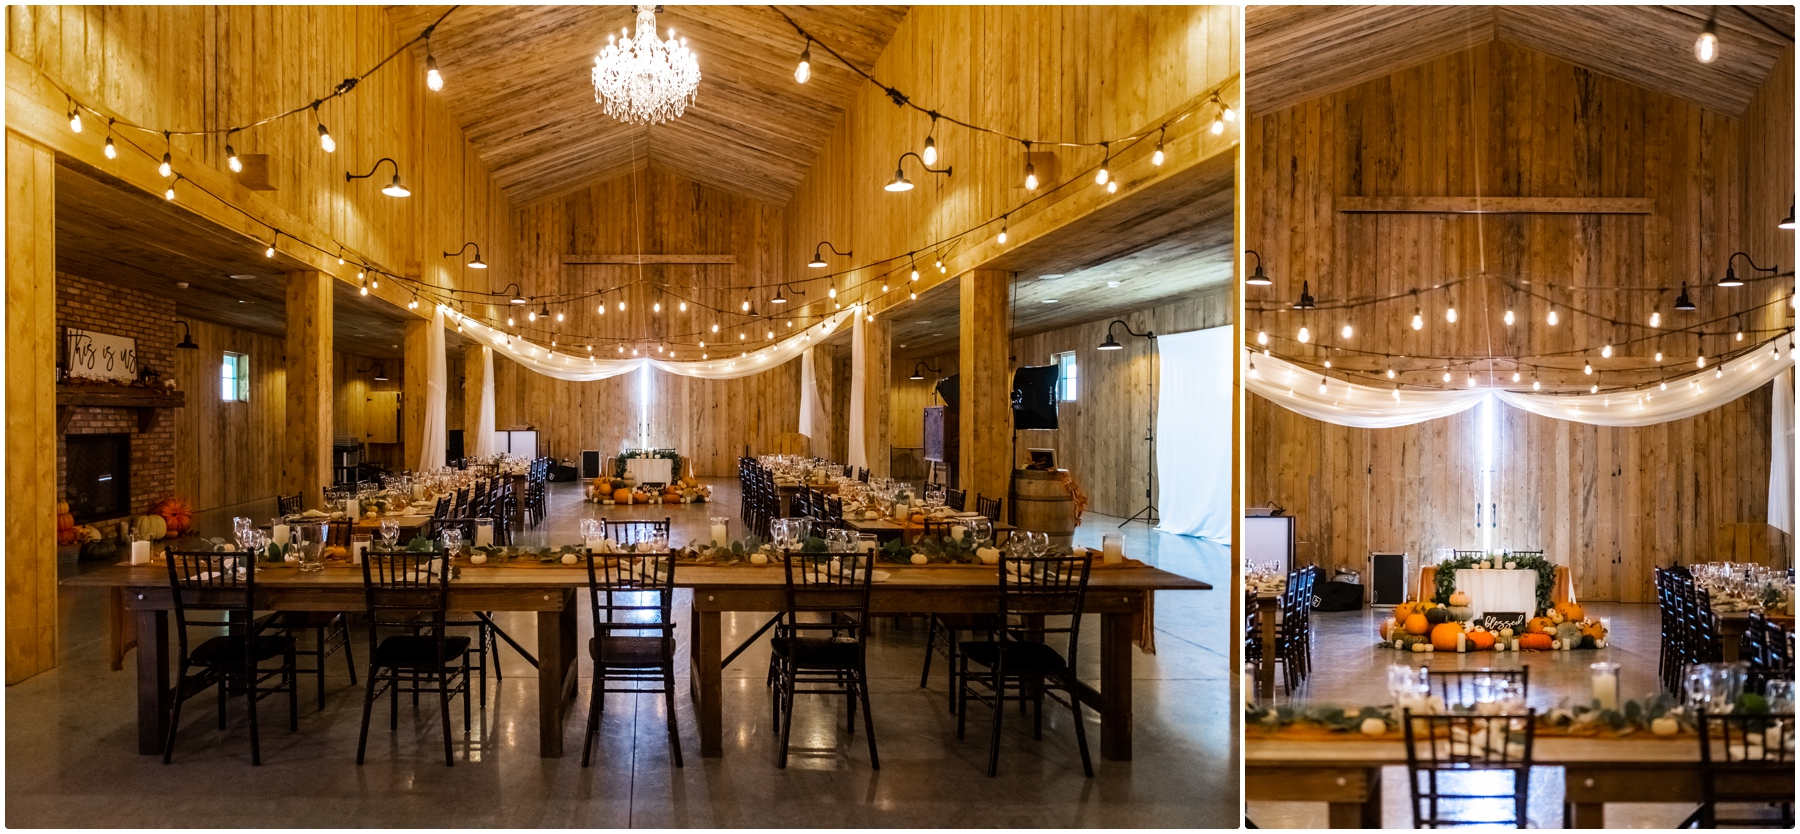 Autumn Barn Wedding Reception Photographer- Sweet Haven Barn